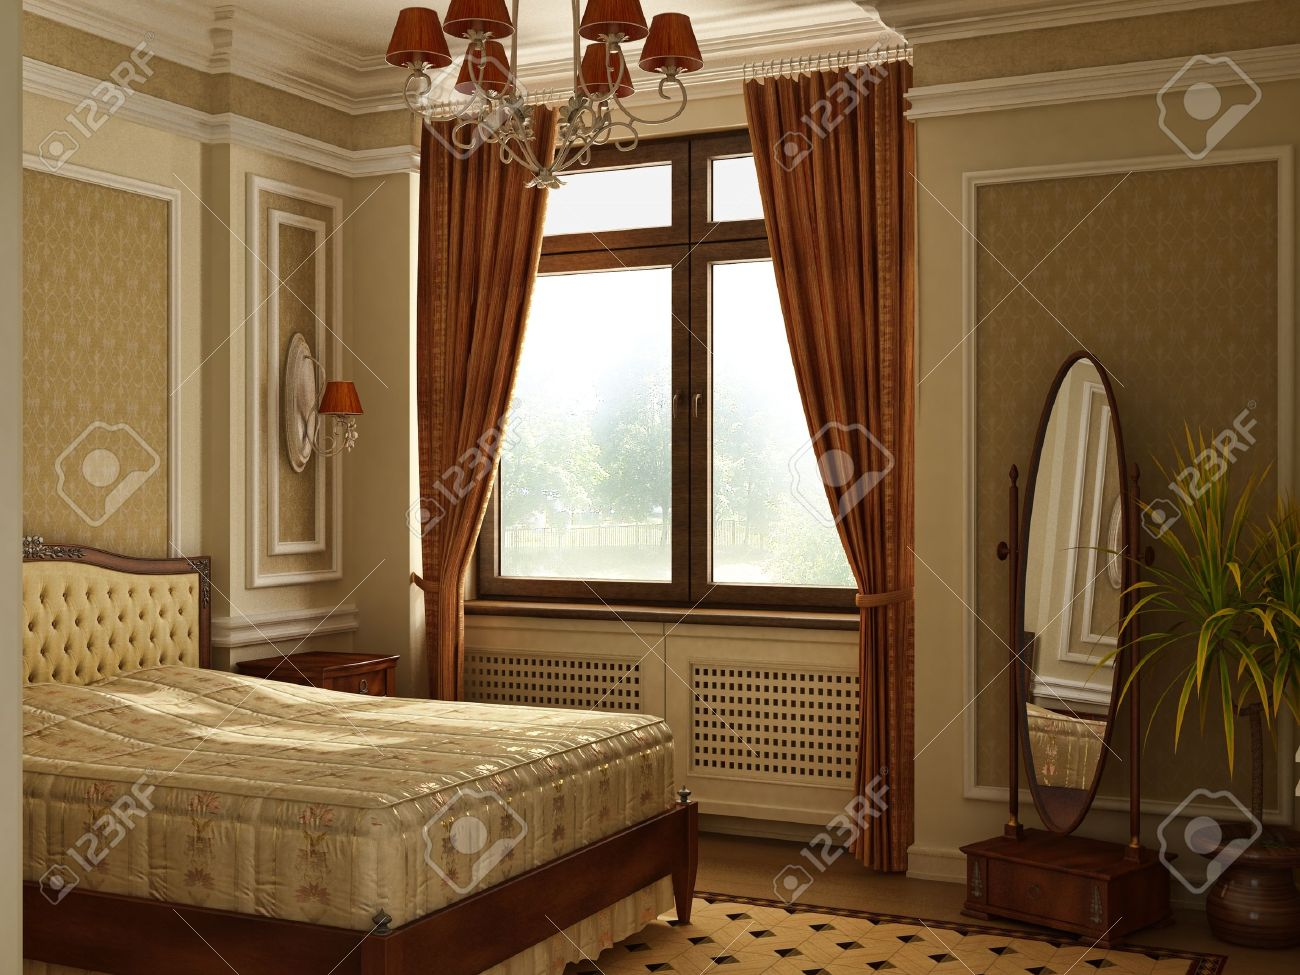 Old Style Bedroom Furniture Classic Antique Style Bedroom With Window Stock Photo Picture And